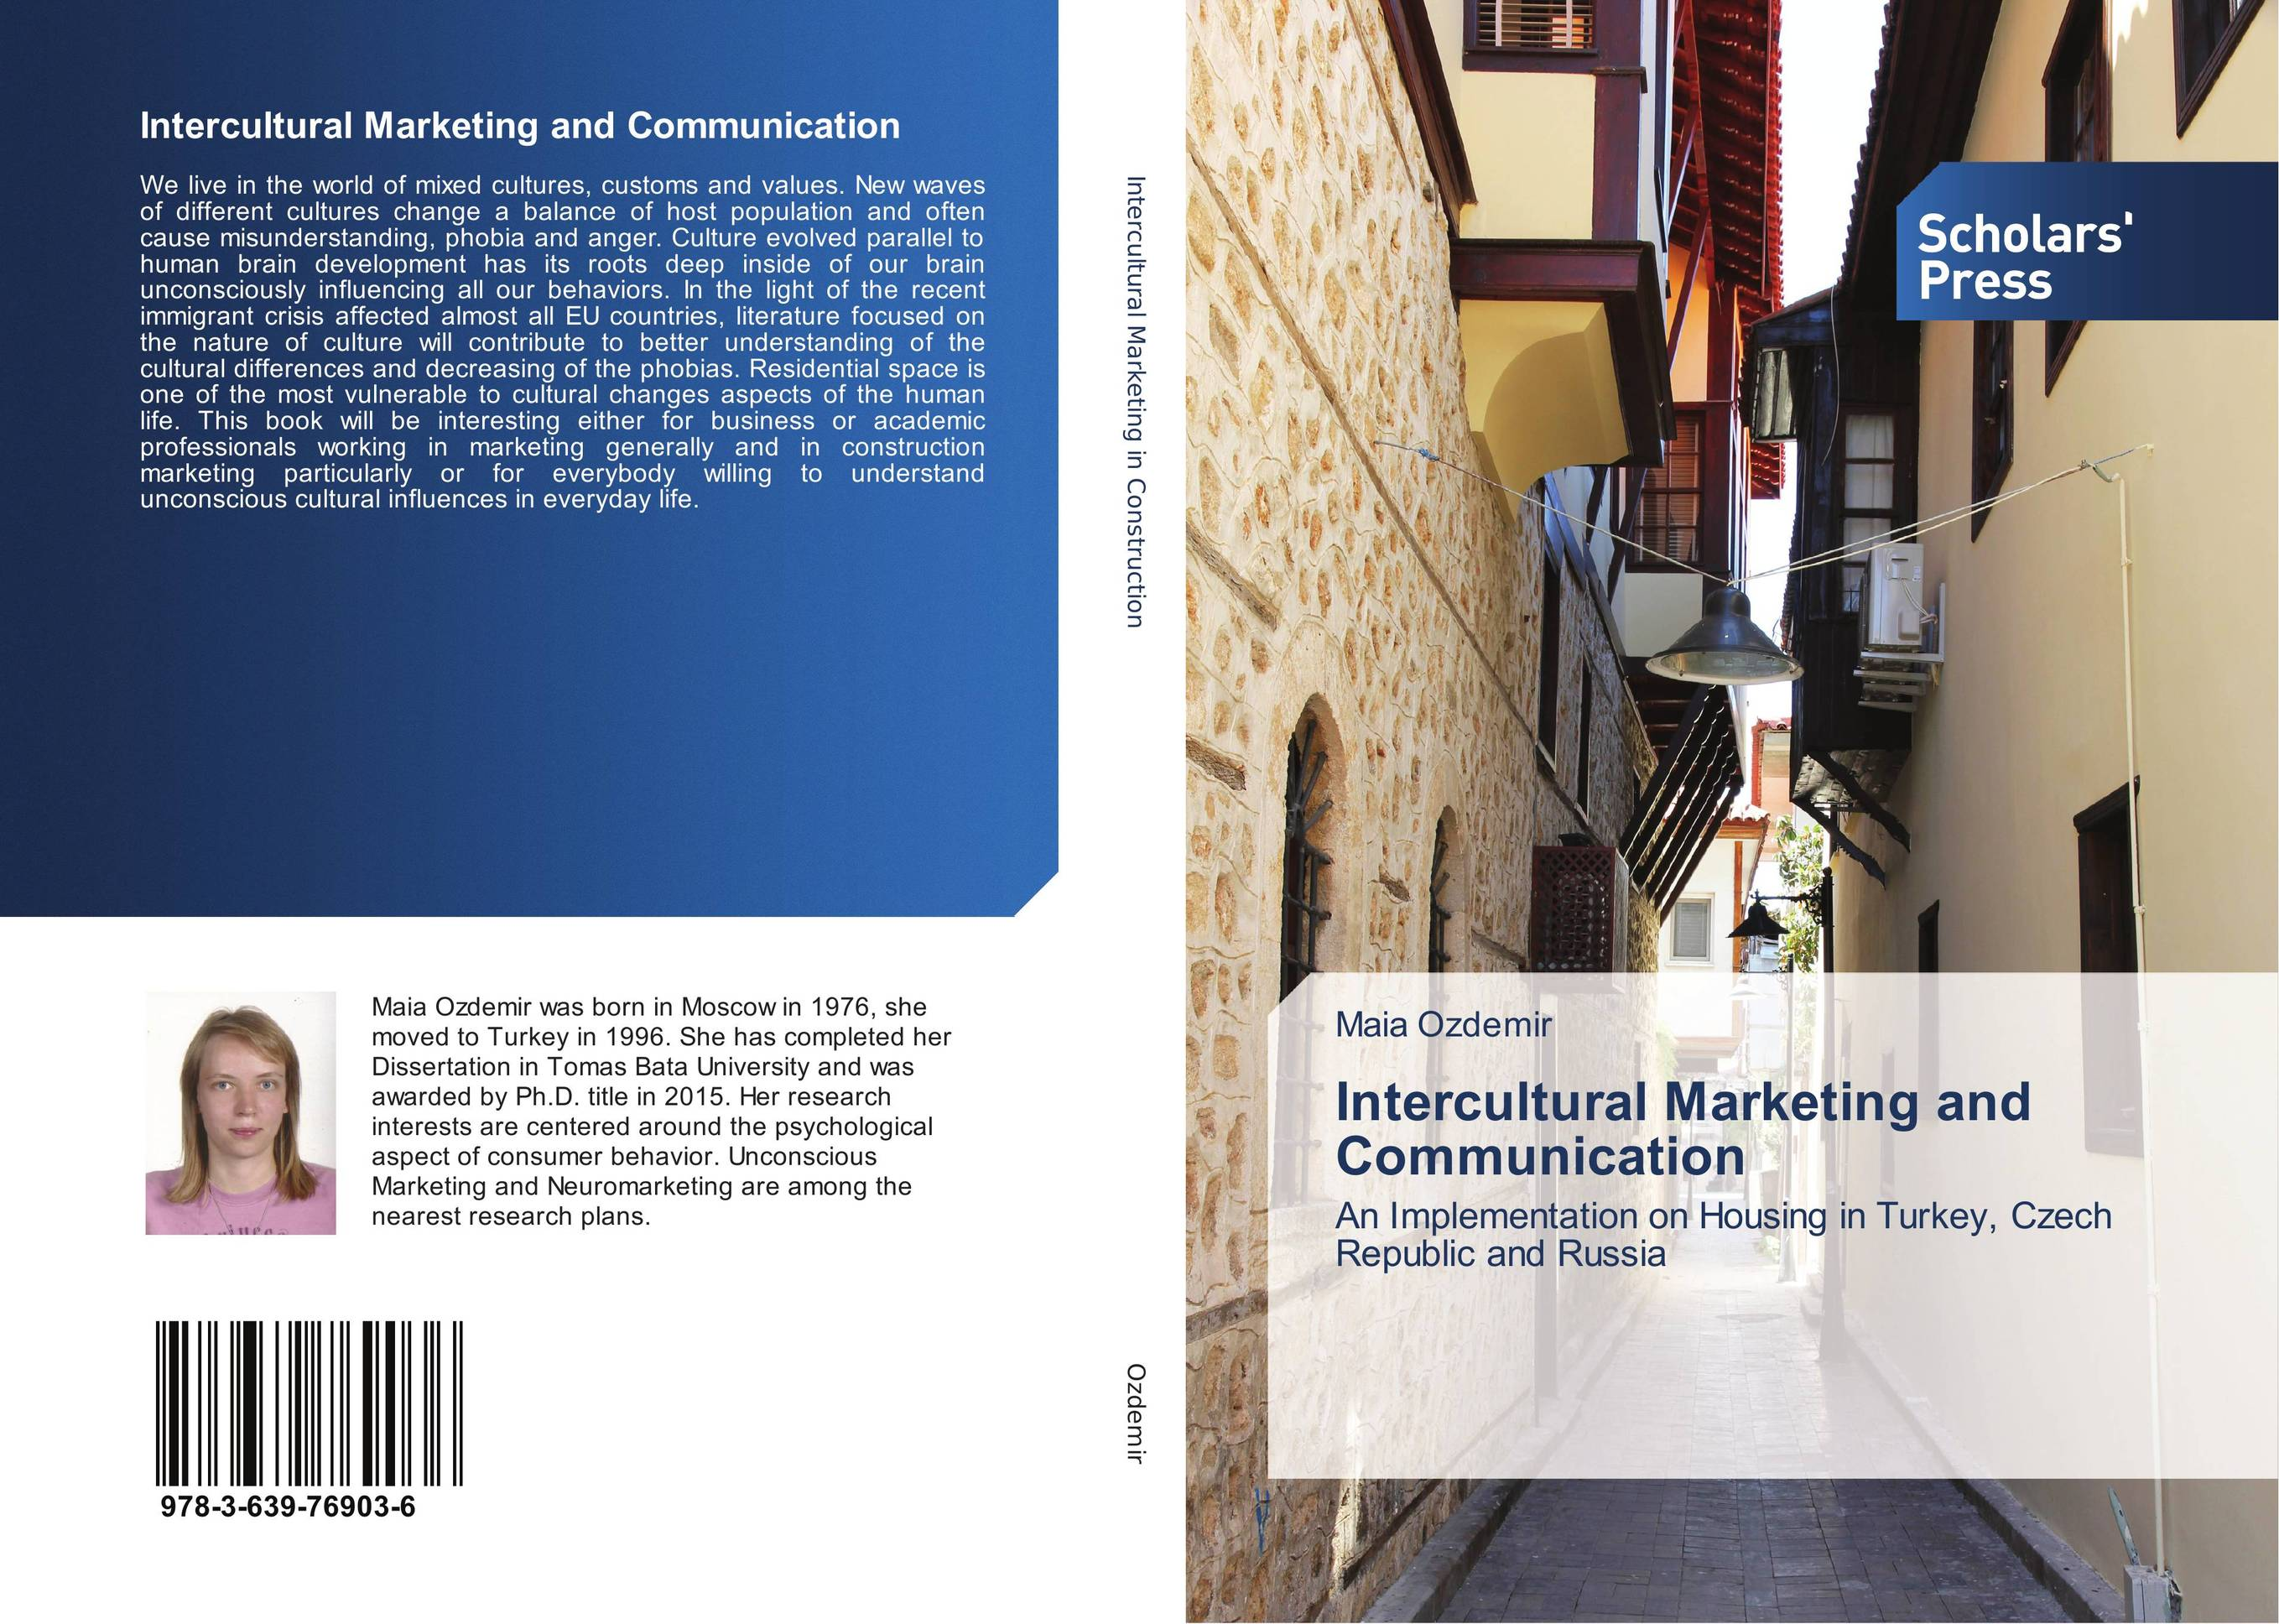 Intercultural Marketing and Communication sponsorship on marketing communication process